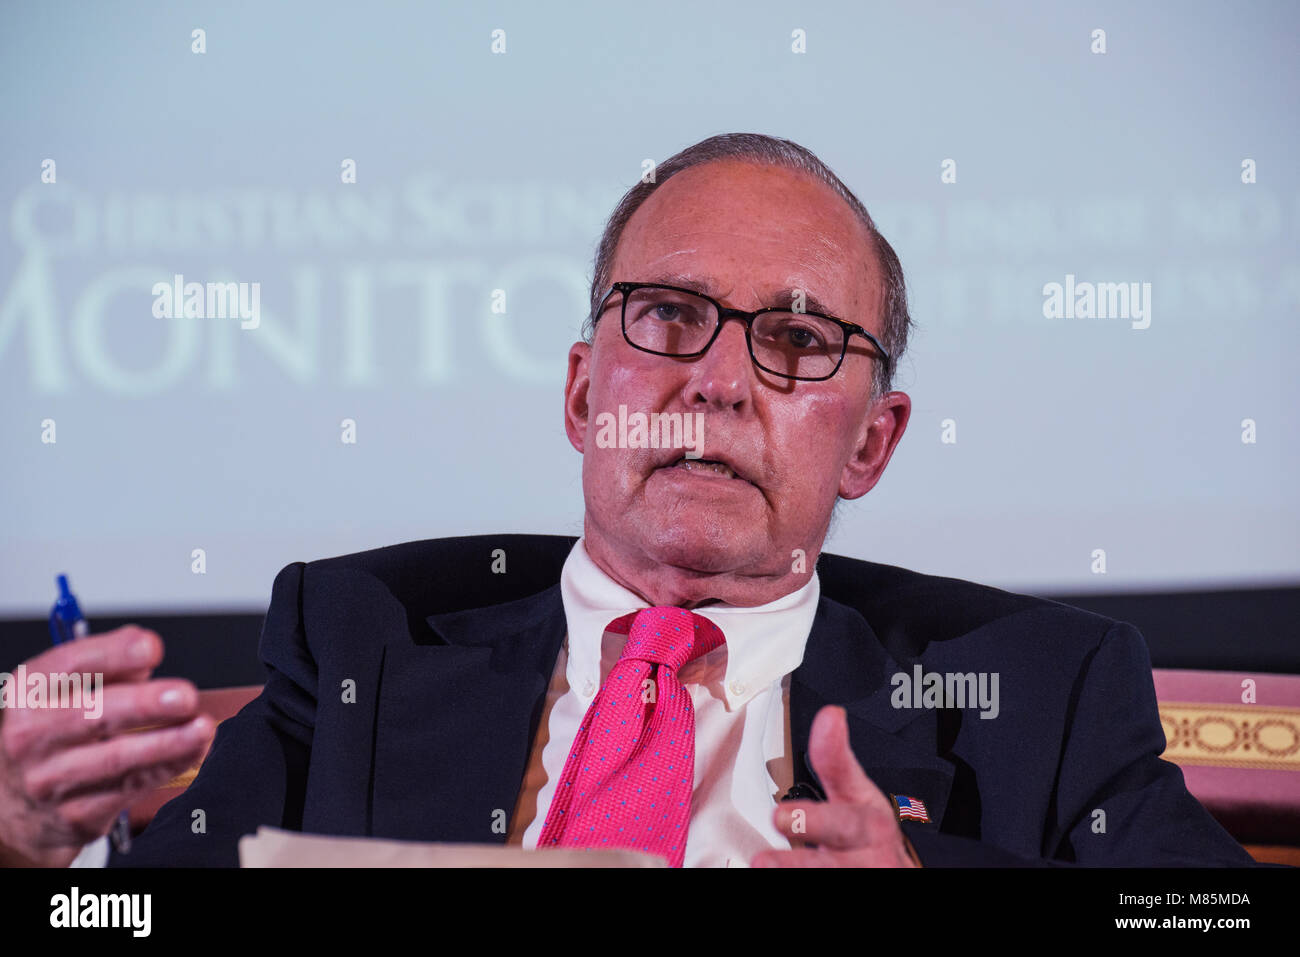 Larry Kudlow on stage during panel discussion 'Finding Common Ground on Taxes' in Nantucket, MA in July - Stock Image